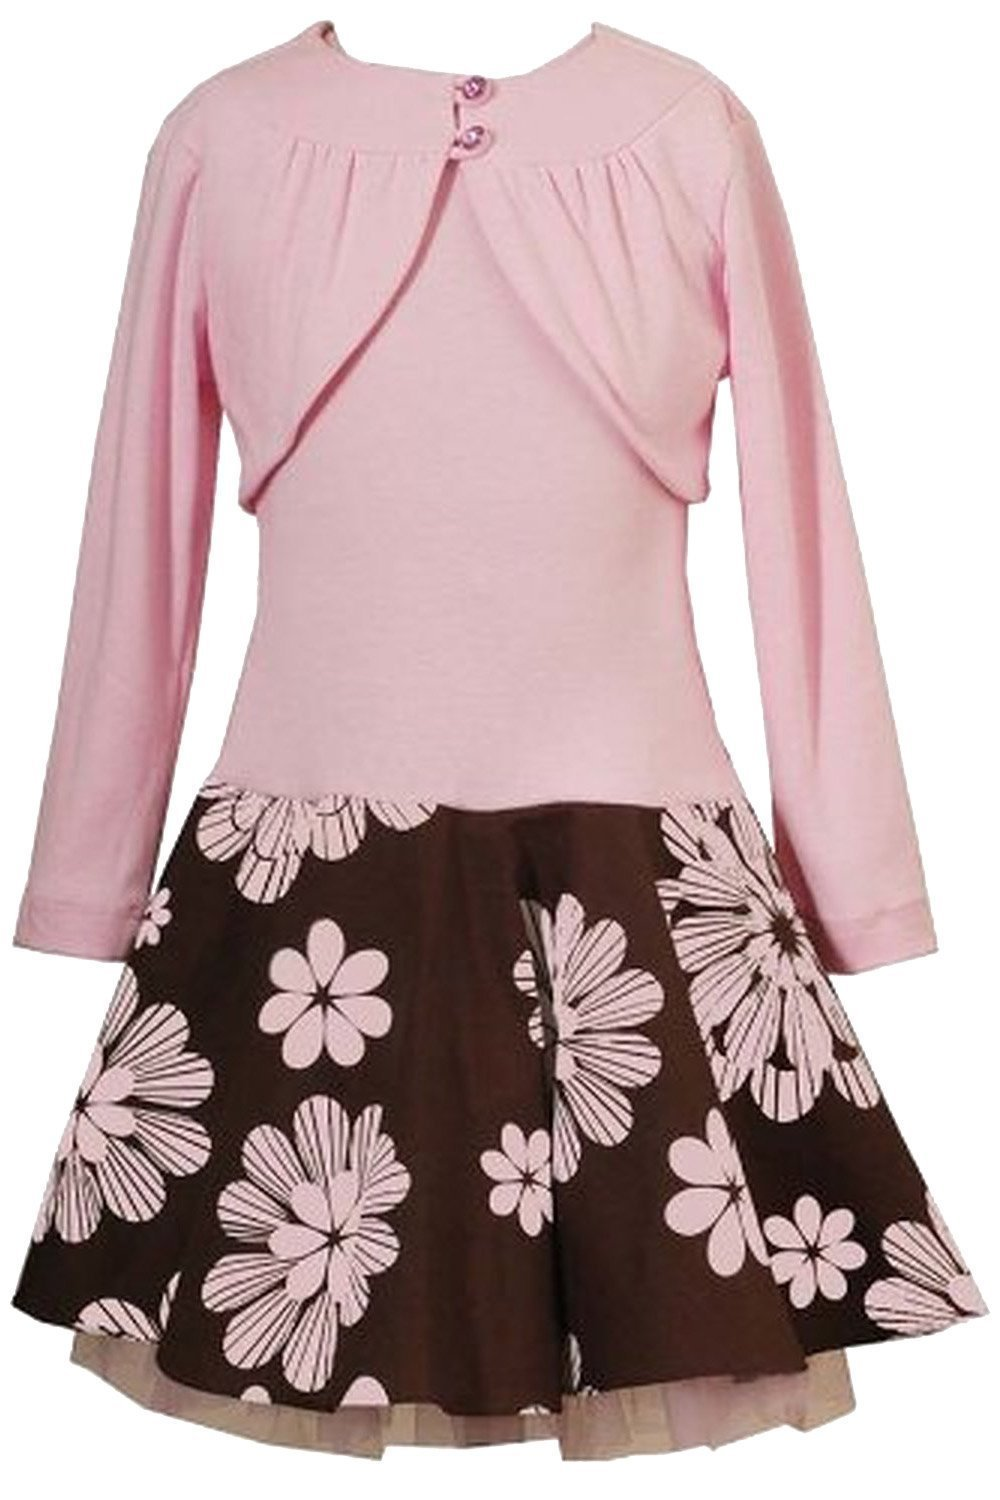 Big Girls Tween Plus Size Pink Brown Drop Waist Dress/Jacket Set RARE EDITIONS